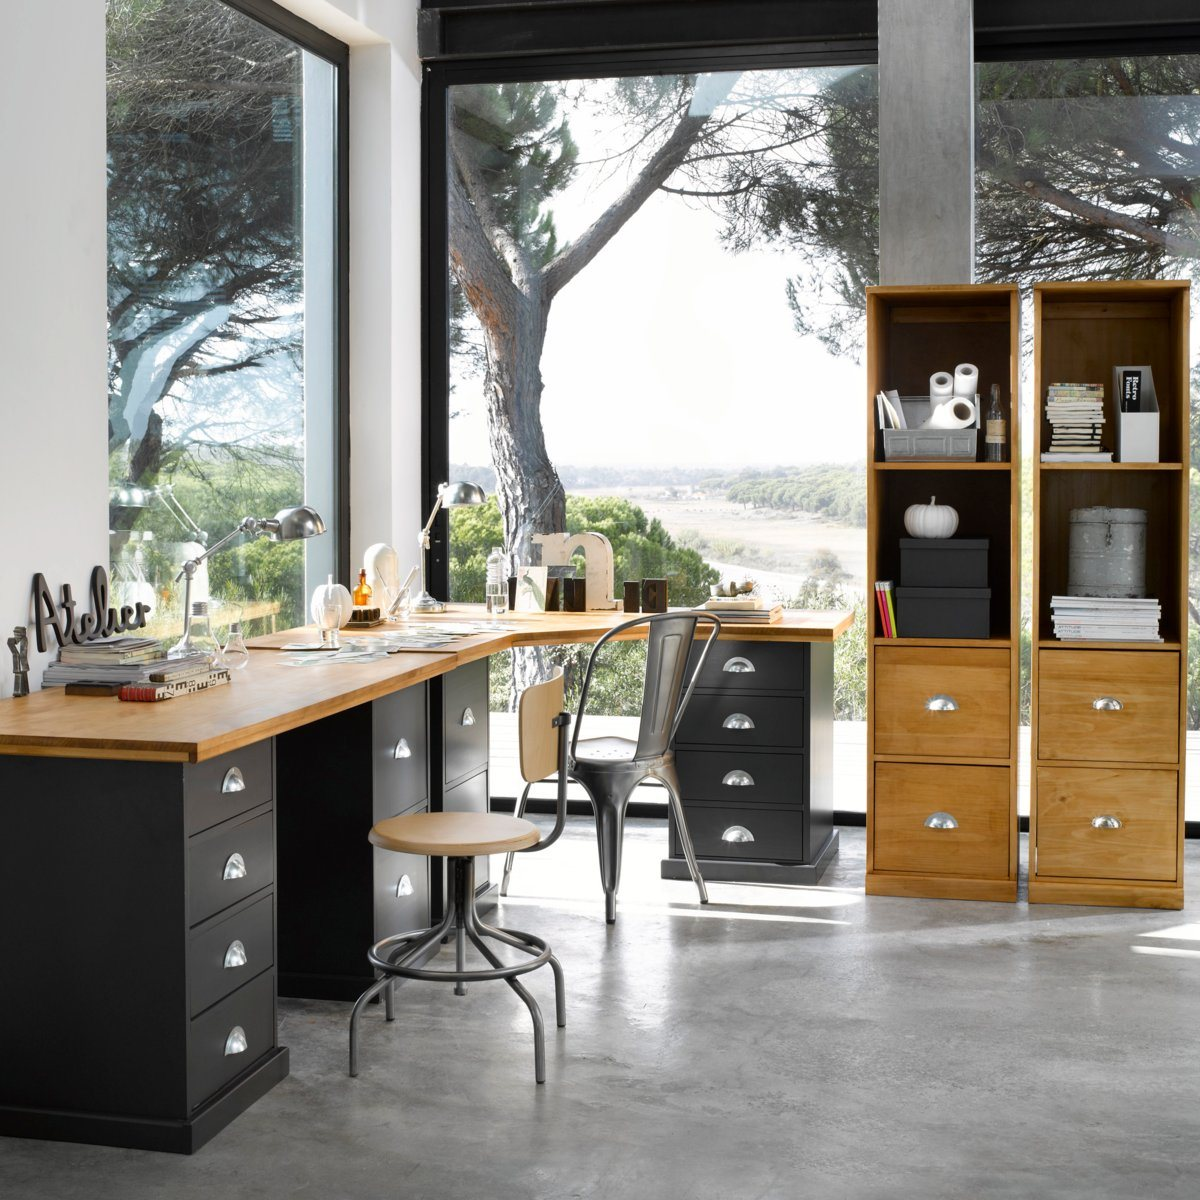 d co industrielle bureau style atelier ampm dekobook. Black Bedroom Furniture Sets. Home Design Ideas